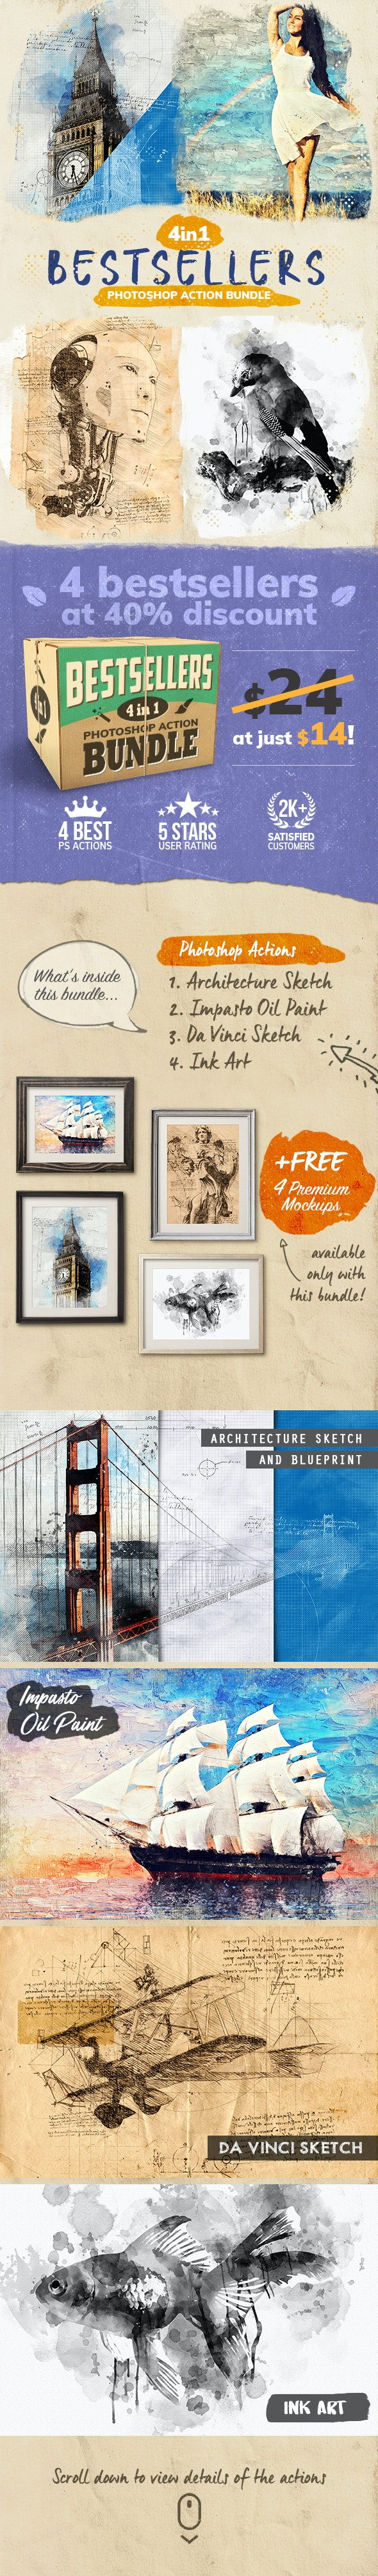 4-in-1 Bestsellers Photoshop Action Bundle - Photo Effects Actions